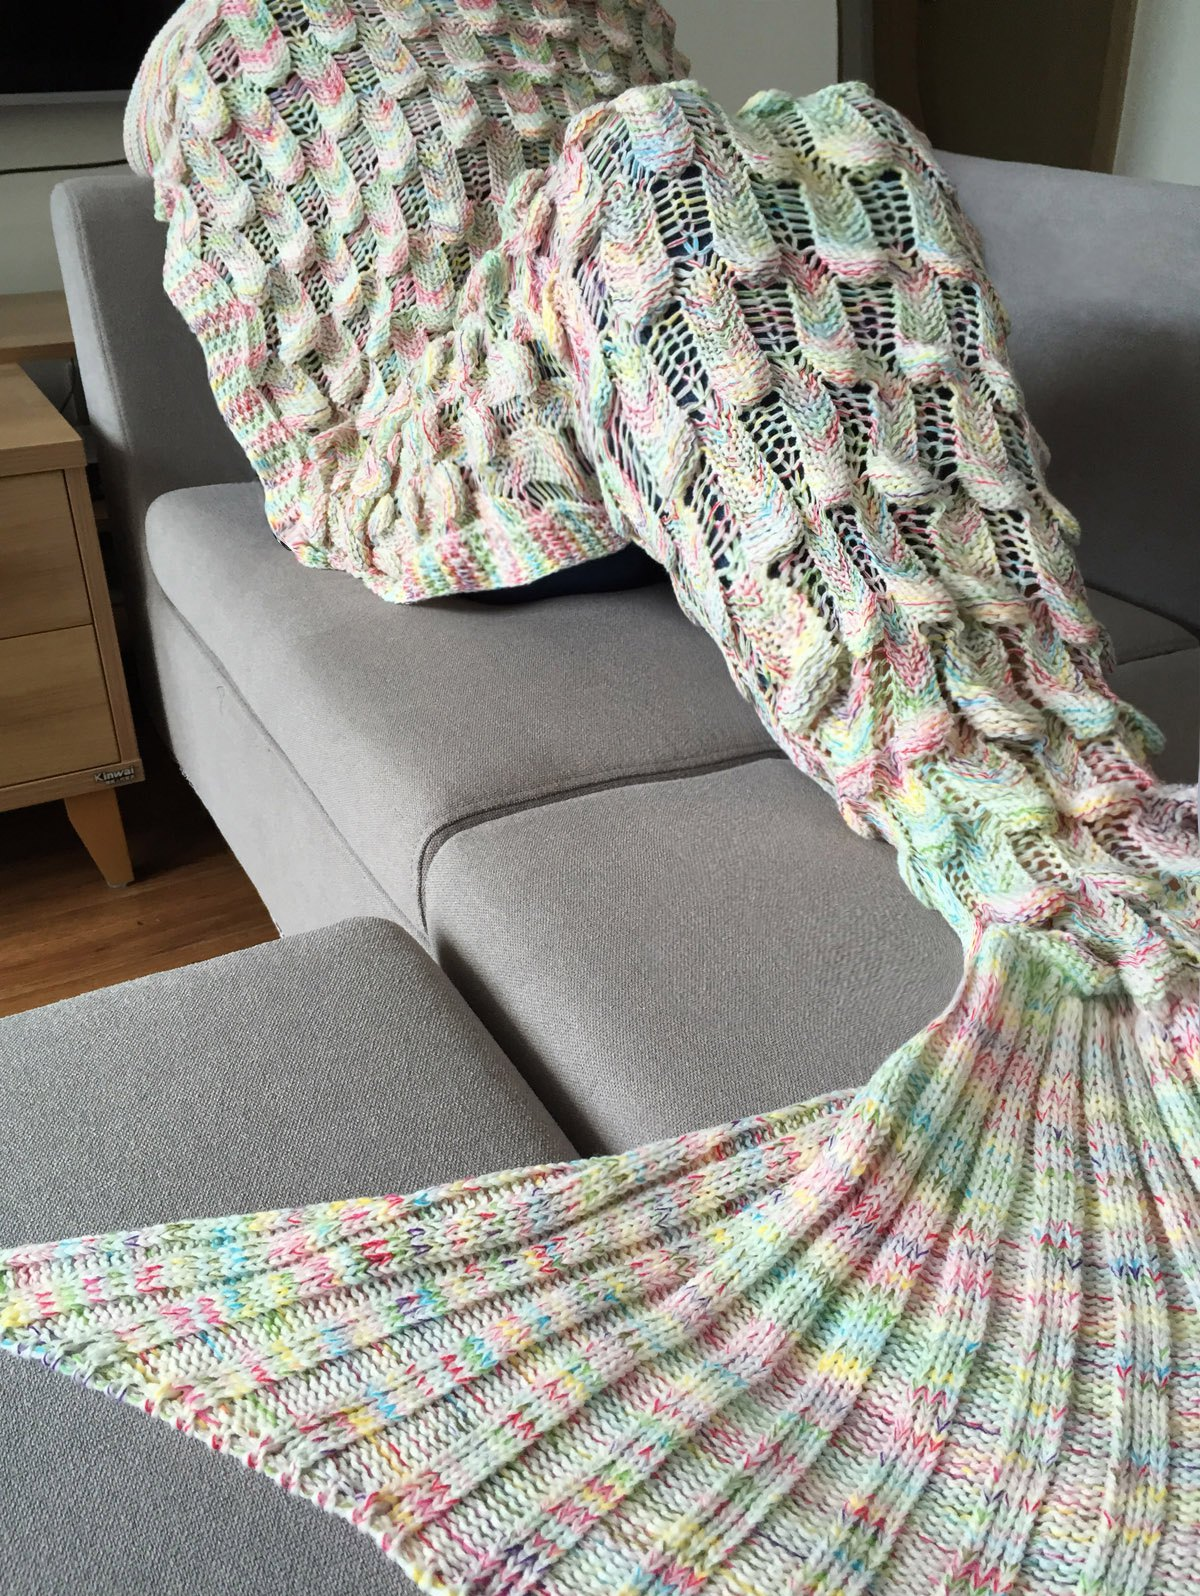 Fashionable Fish Scale Shape Mermaid Tail Design Knitting Blanket For Adult